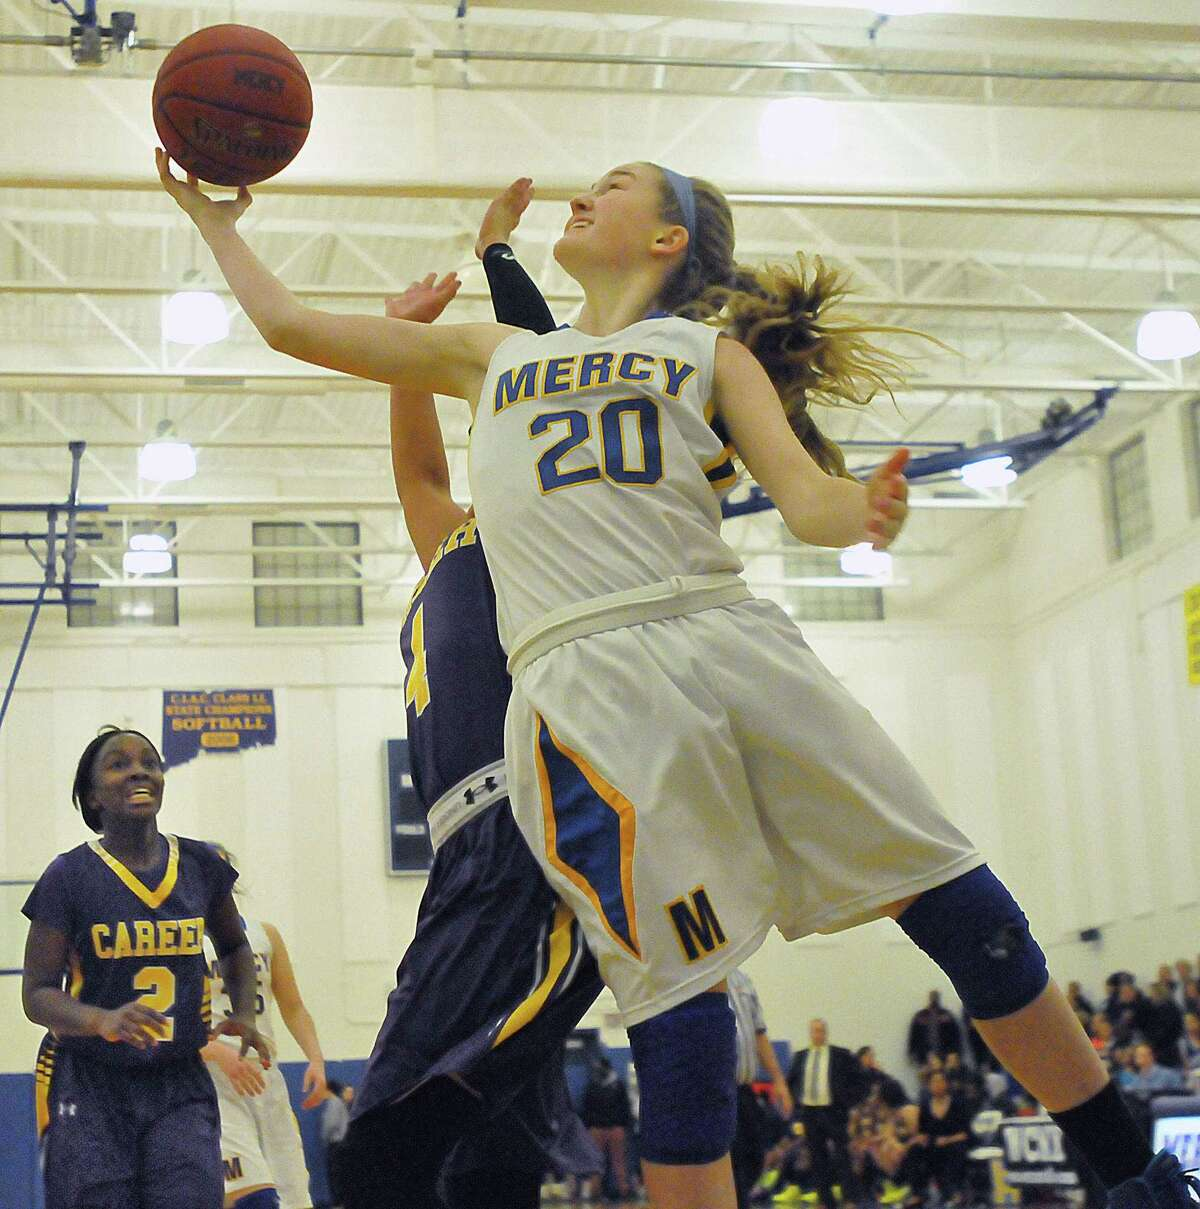 Mercy's Kendra Landy elevates for a shot as Career Magnet's Ashley Arroyo defends during a game last season.